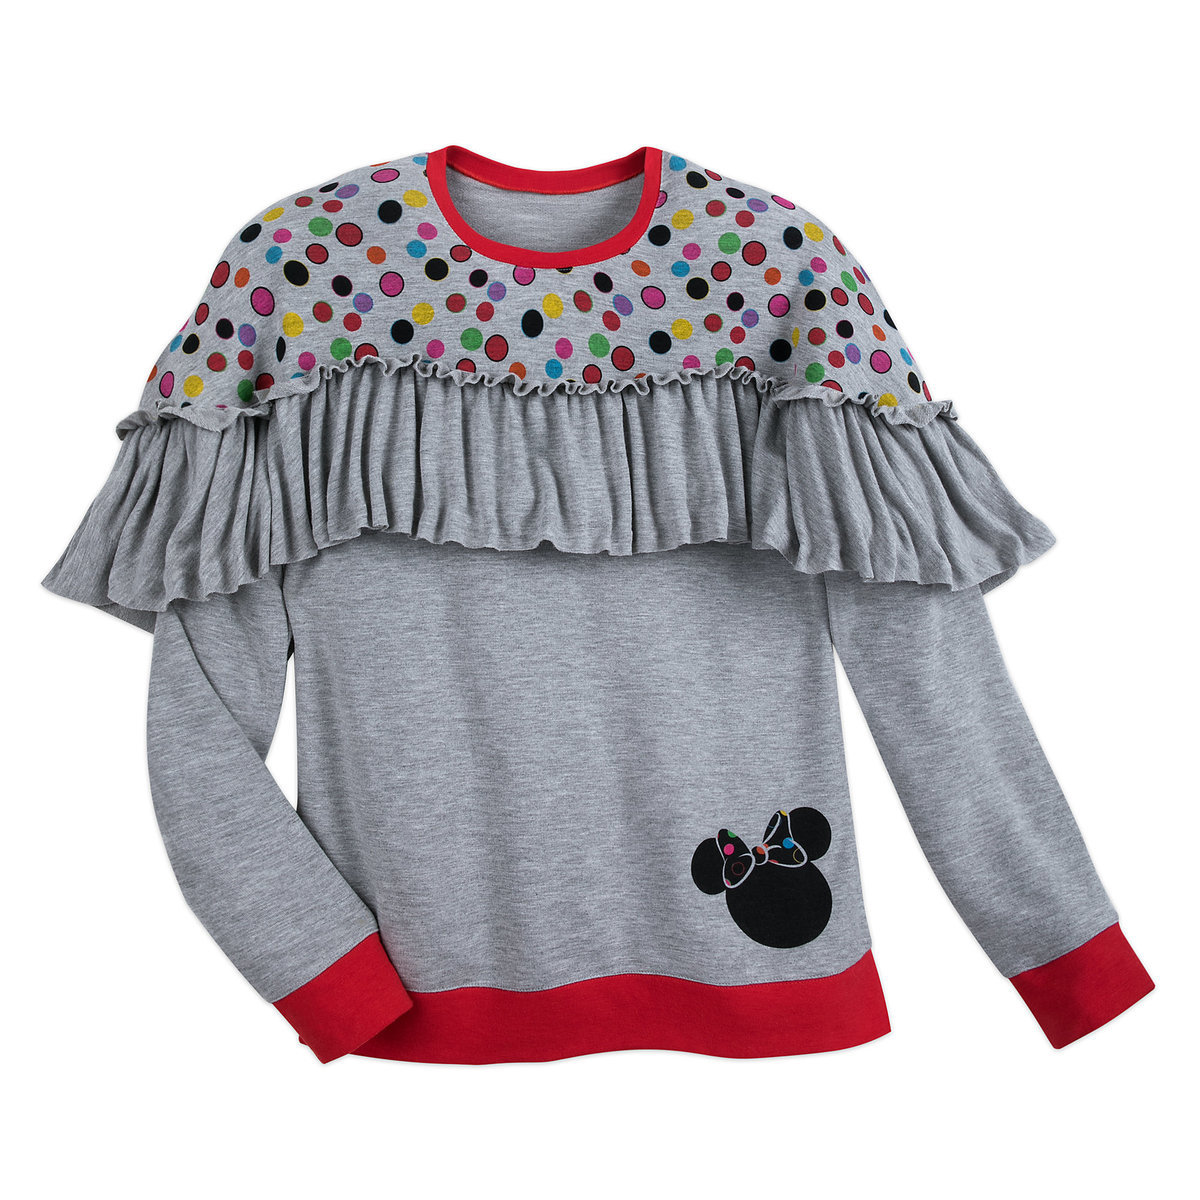 f0d715227 Product Image of Minnie Mouse Ruffled Top for Women by Disney Boutique # 1